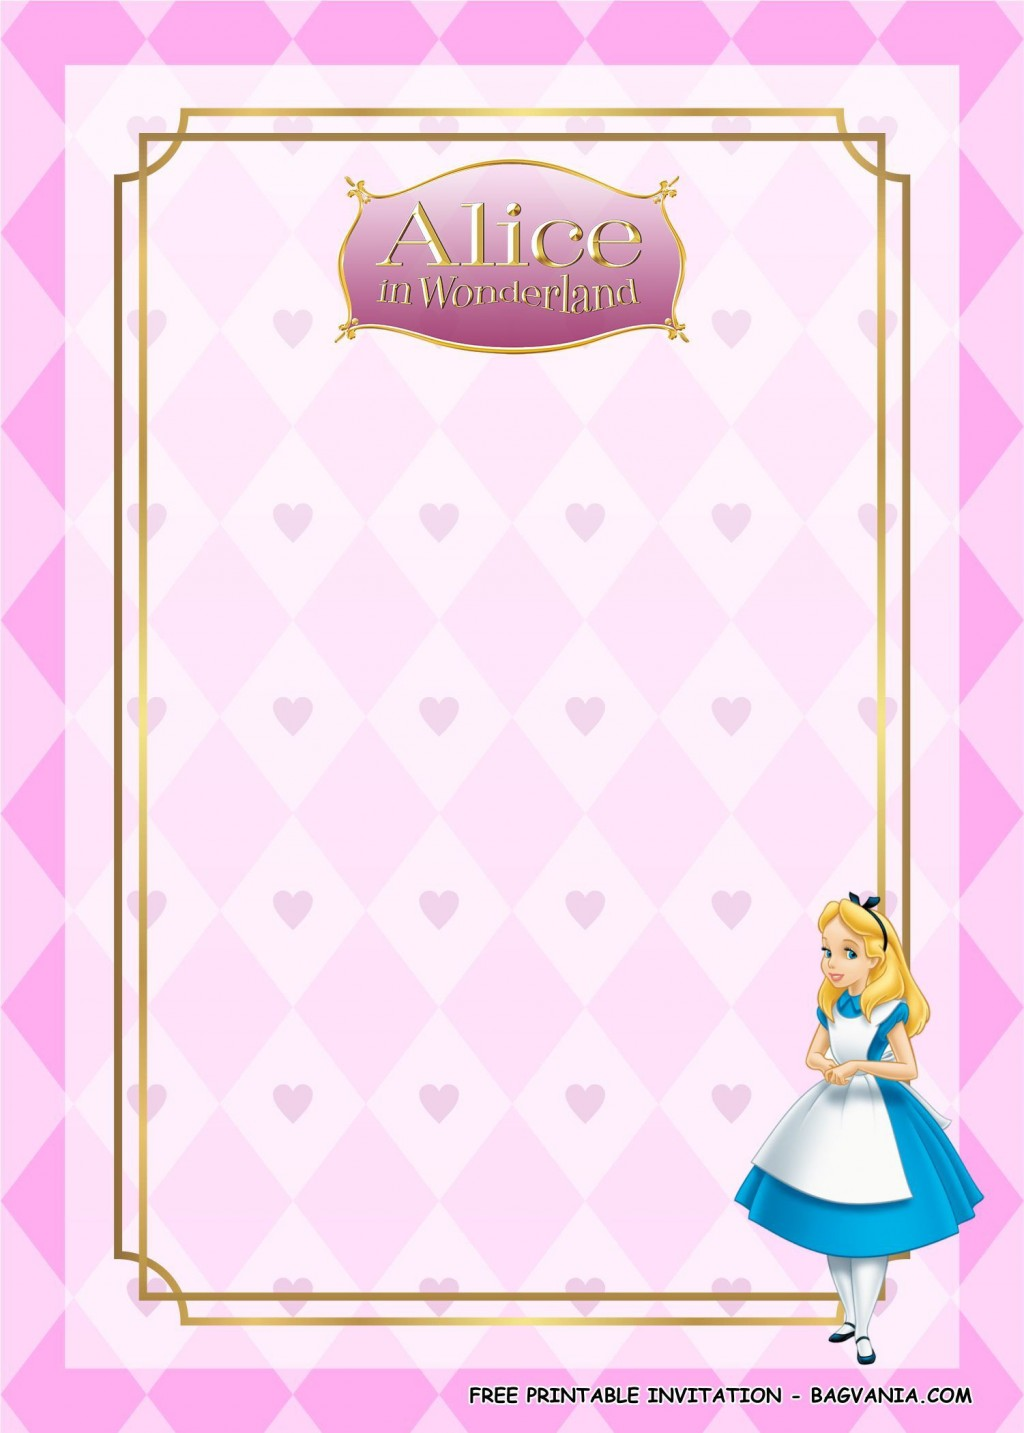 008 Stunning Alice In Wonderland Invitation Template Example  Templates Birthday Free Wedding Wording DownloadLarge